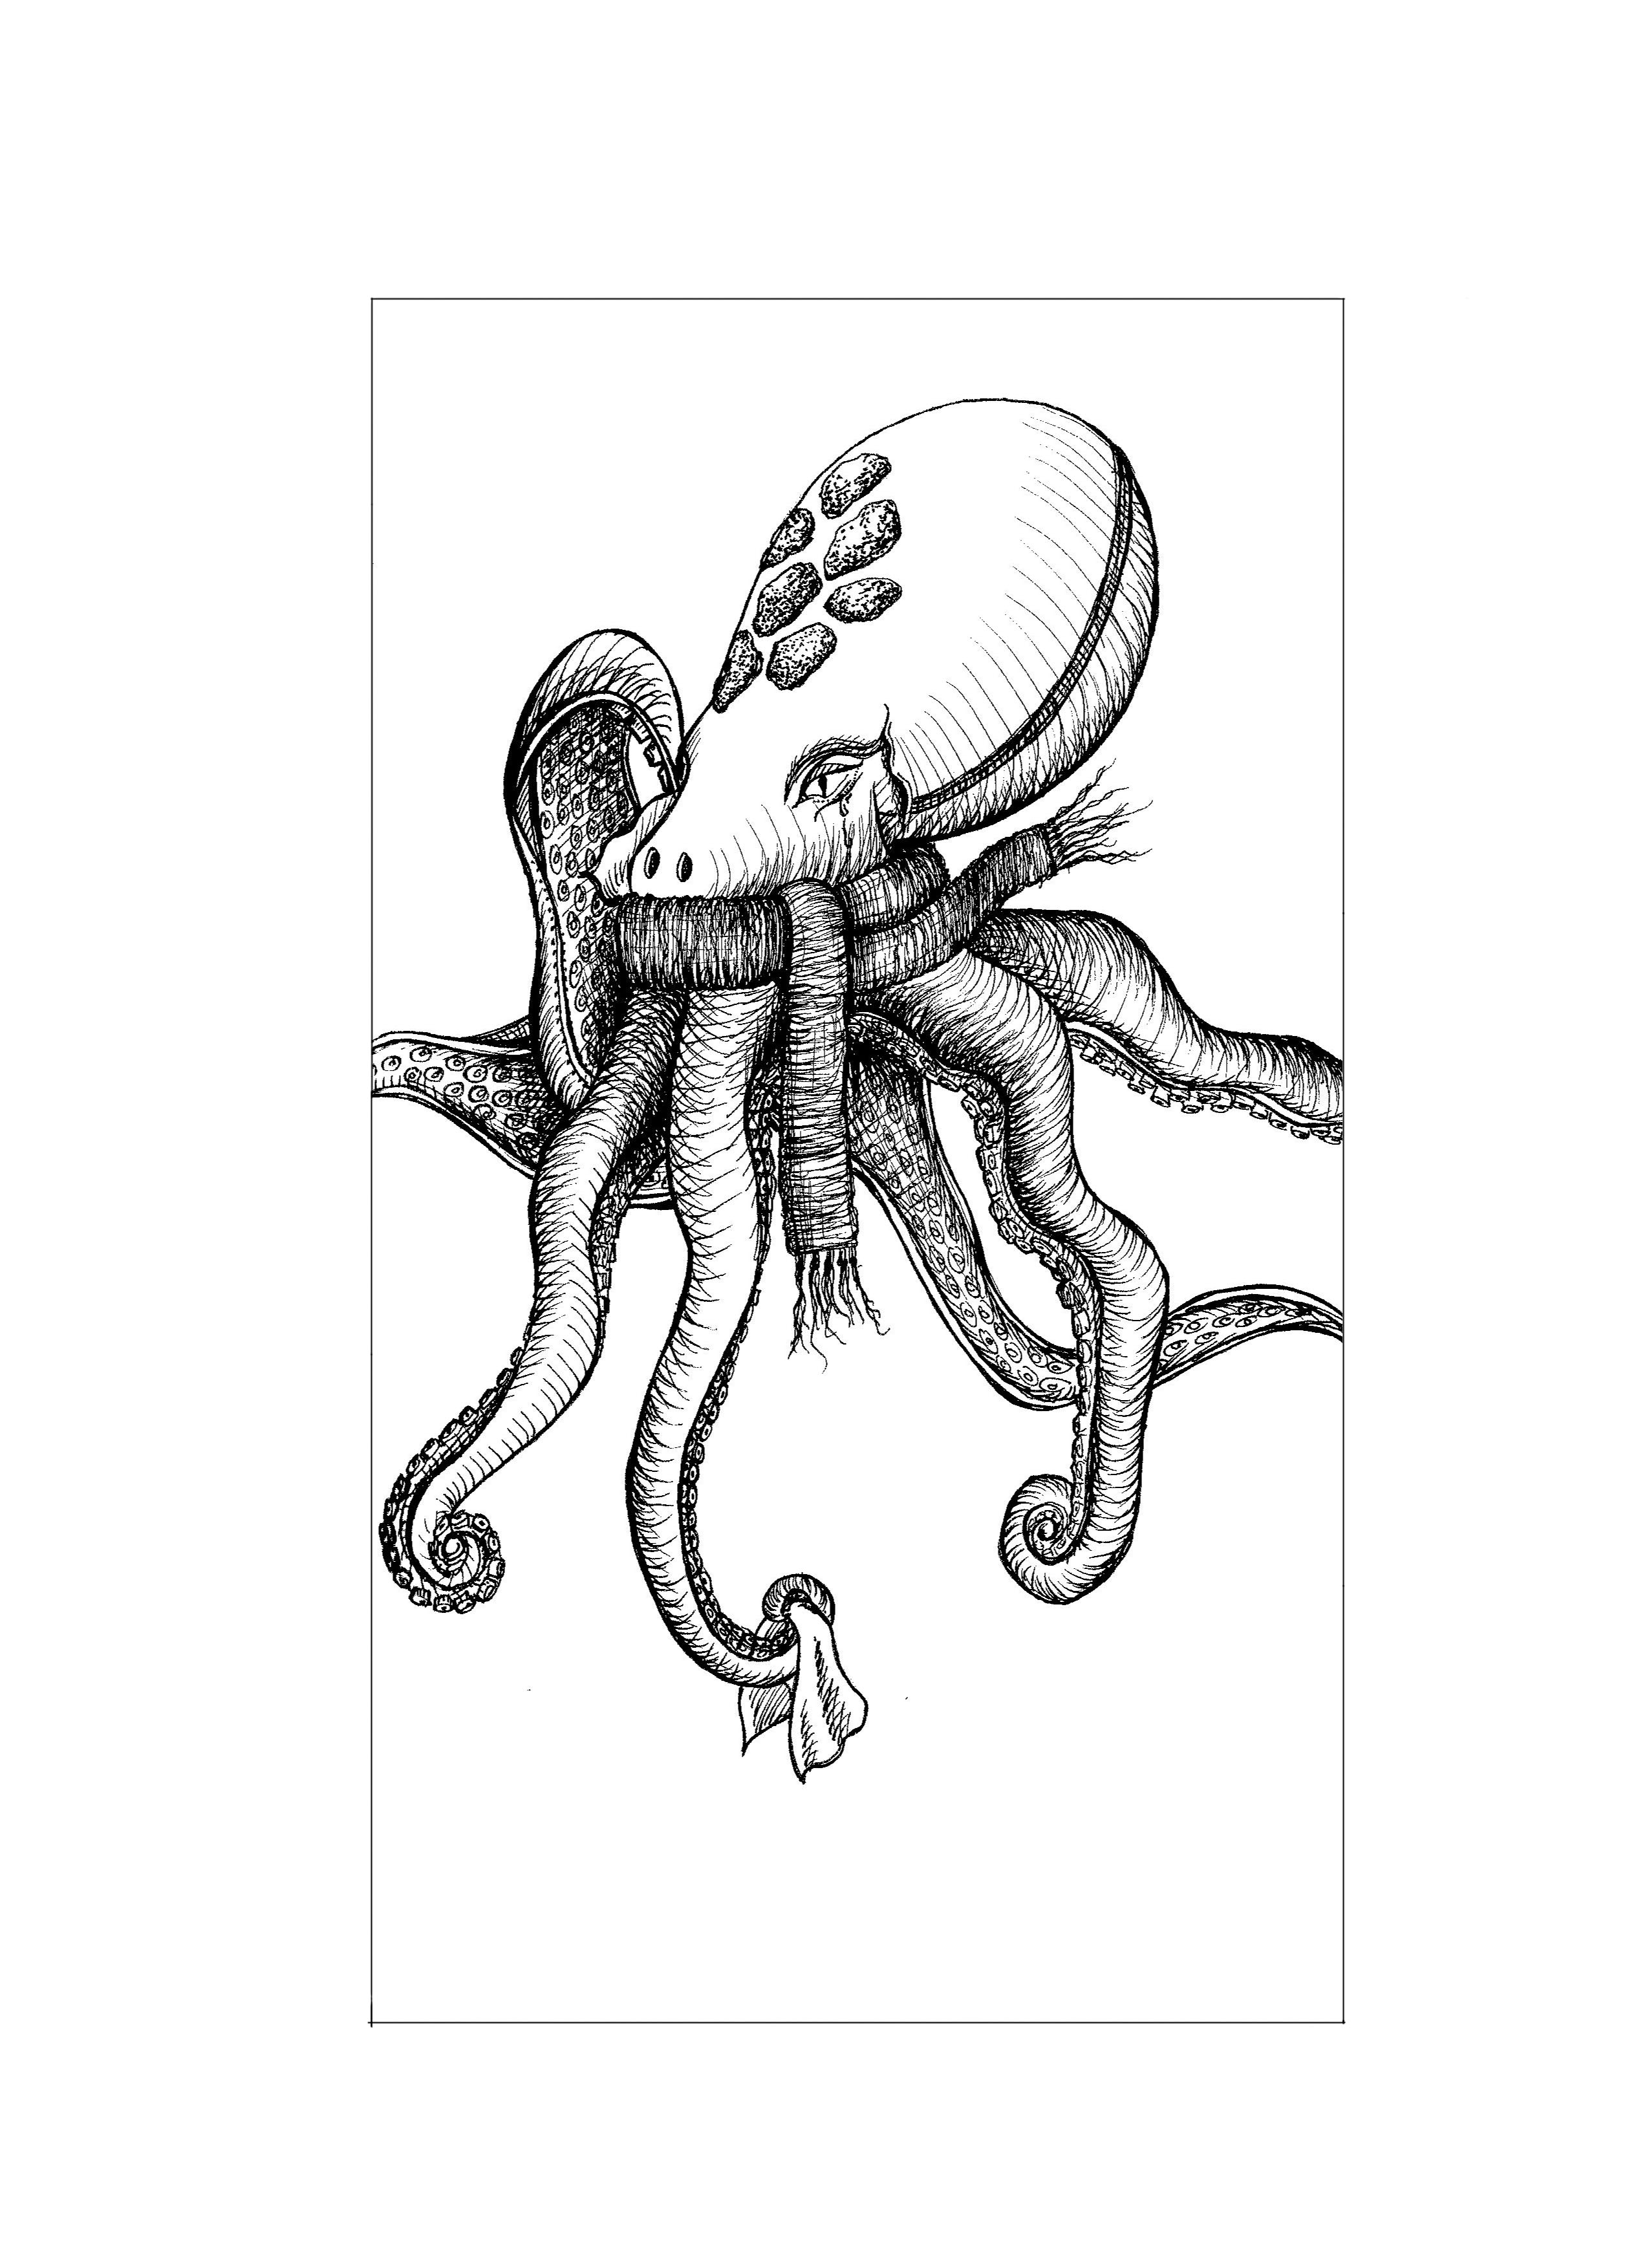 Octopus with acold